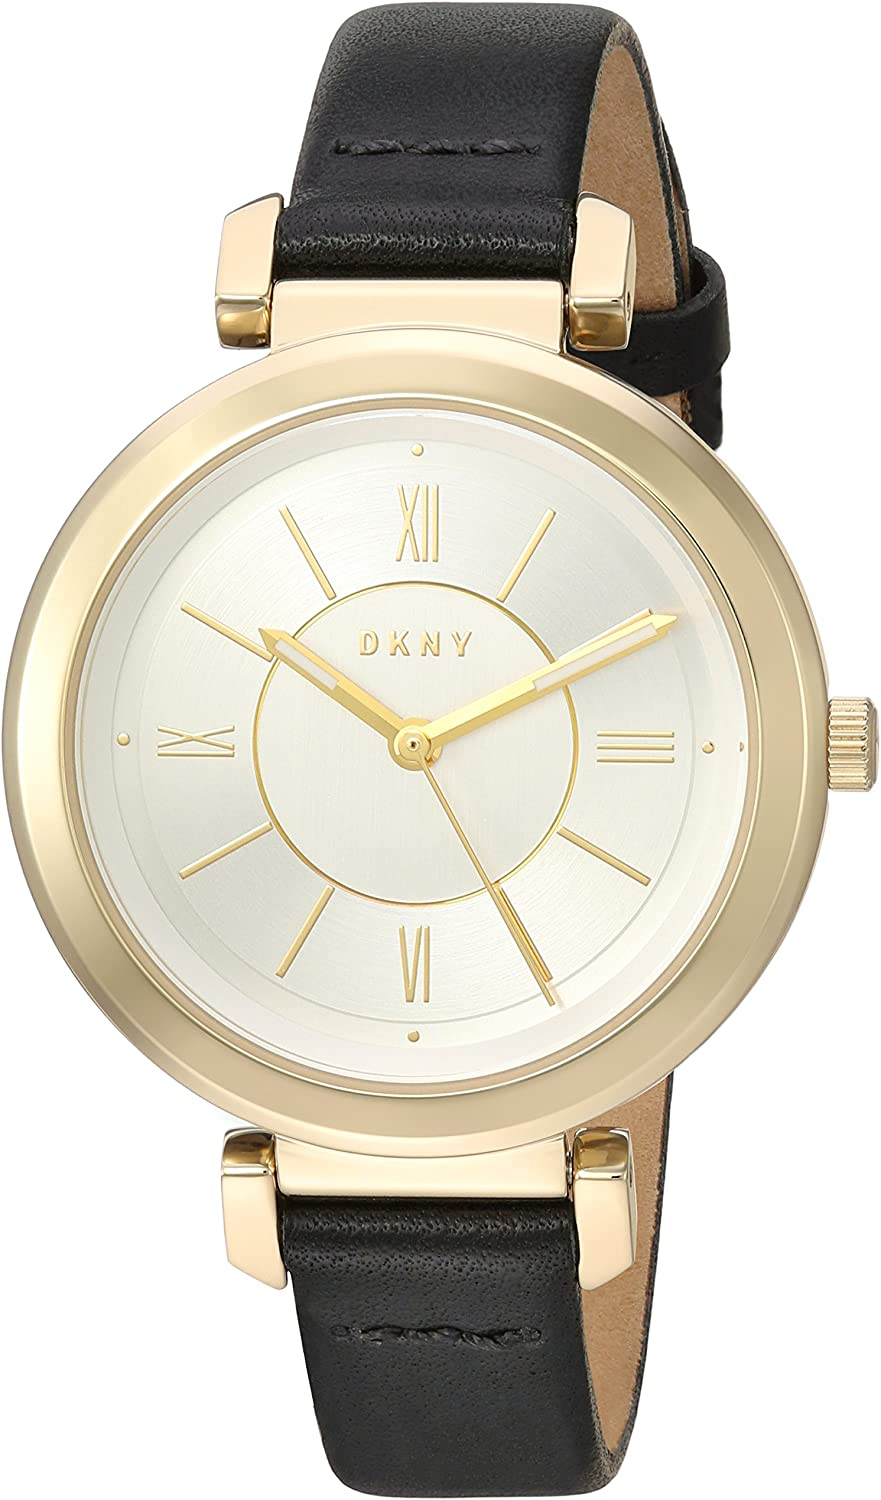 DKNY Women's Ellington Analog-Quartz Watch with Stainless-Steel-Plated Strap, Black, 12 (Model: NY2587)